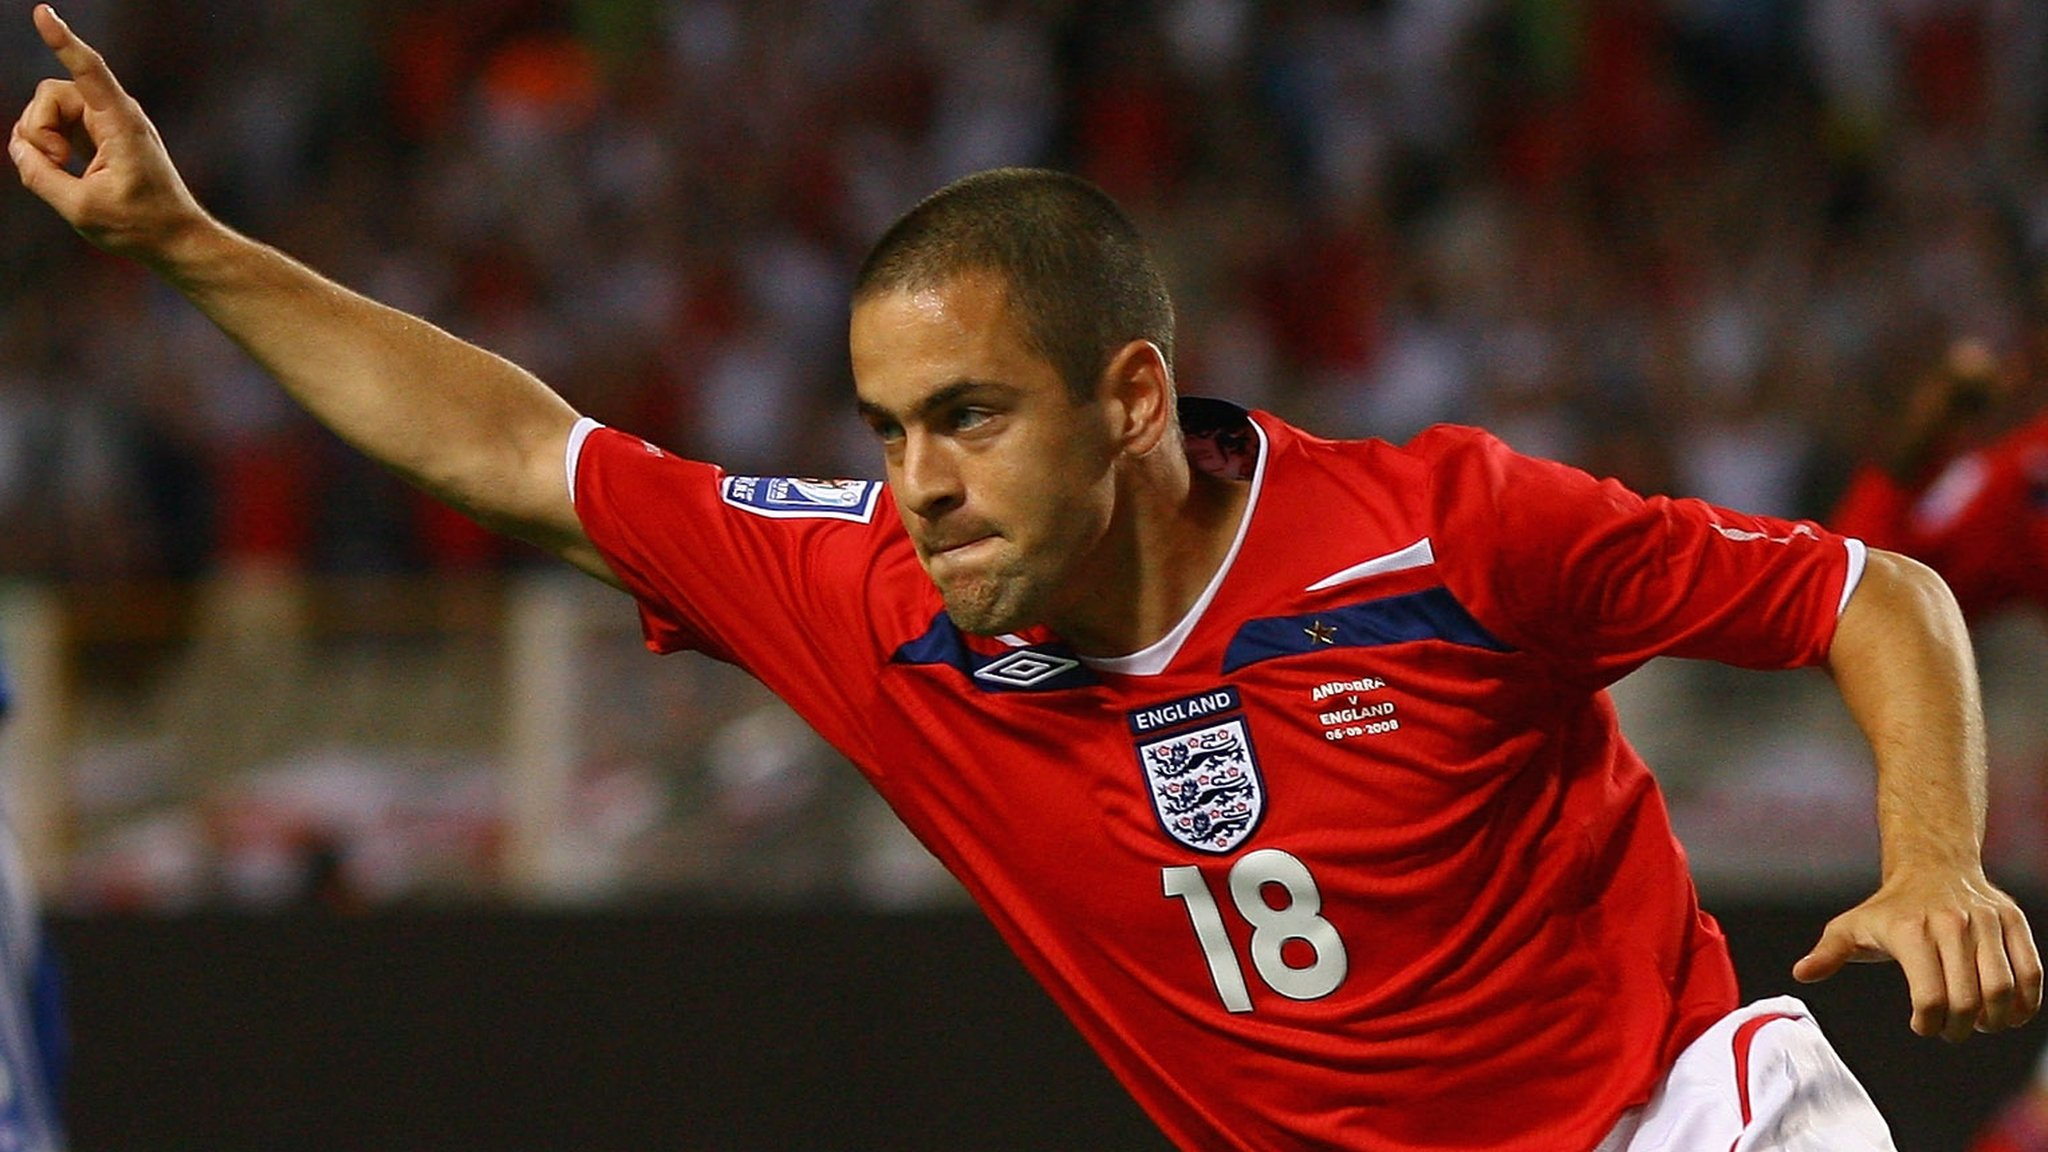 Joe Cole retires: Former England, Chelsea & West Ham midfielder quits at 37